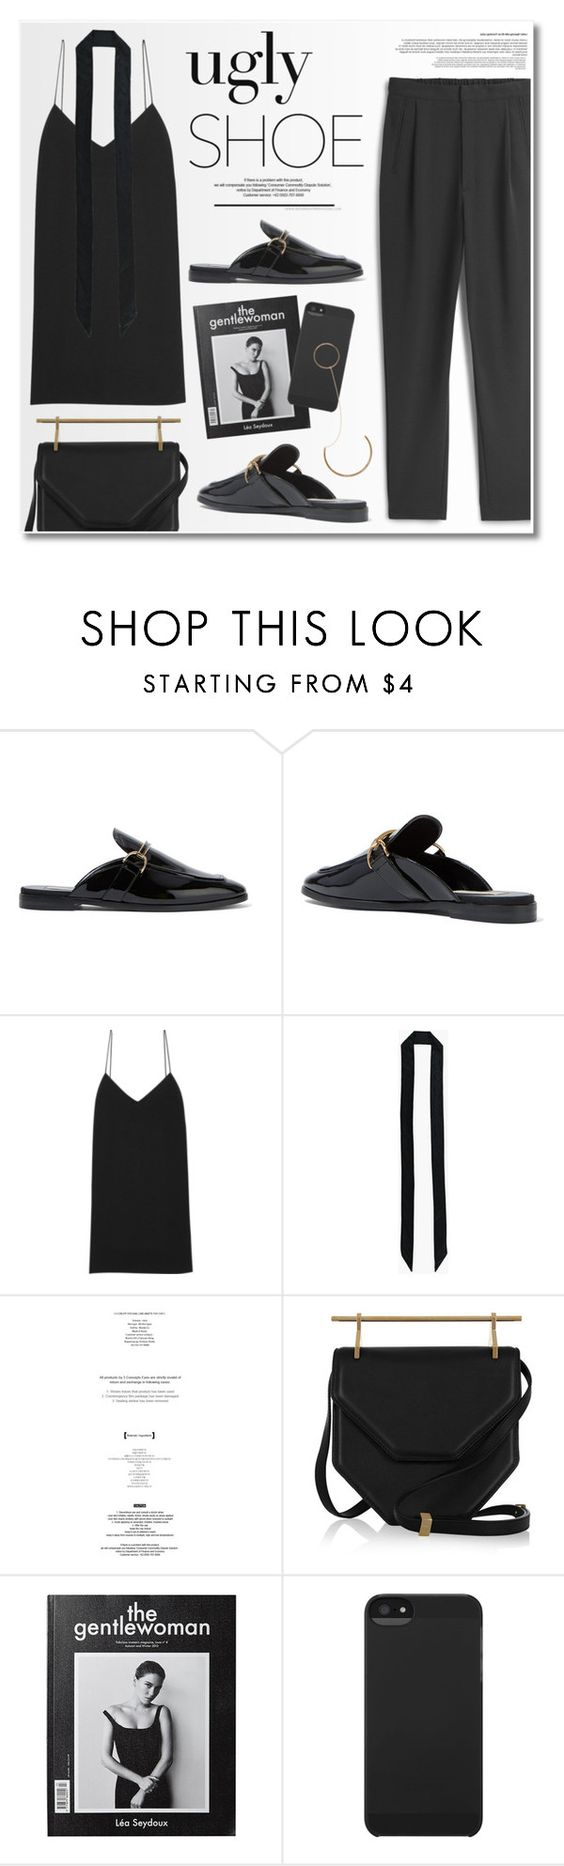 """Chic ugly shoes"" by ruska-10 ❤ liked on Polyvore featuring STELLA McCARTNEY, The Row, Boohoo, StyleNanda, Pierre Hardy, Incase and modern"